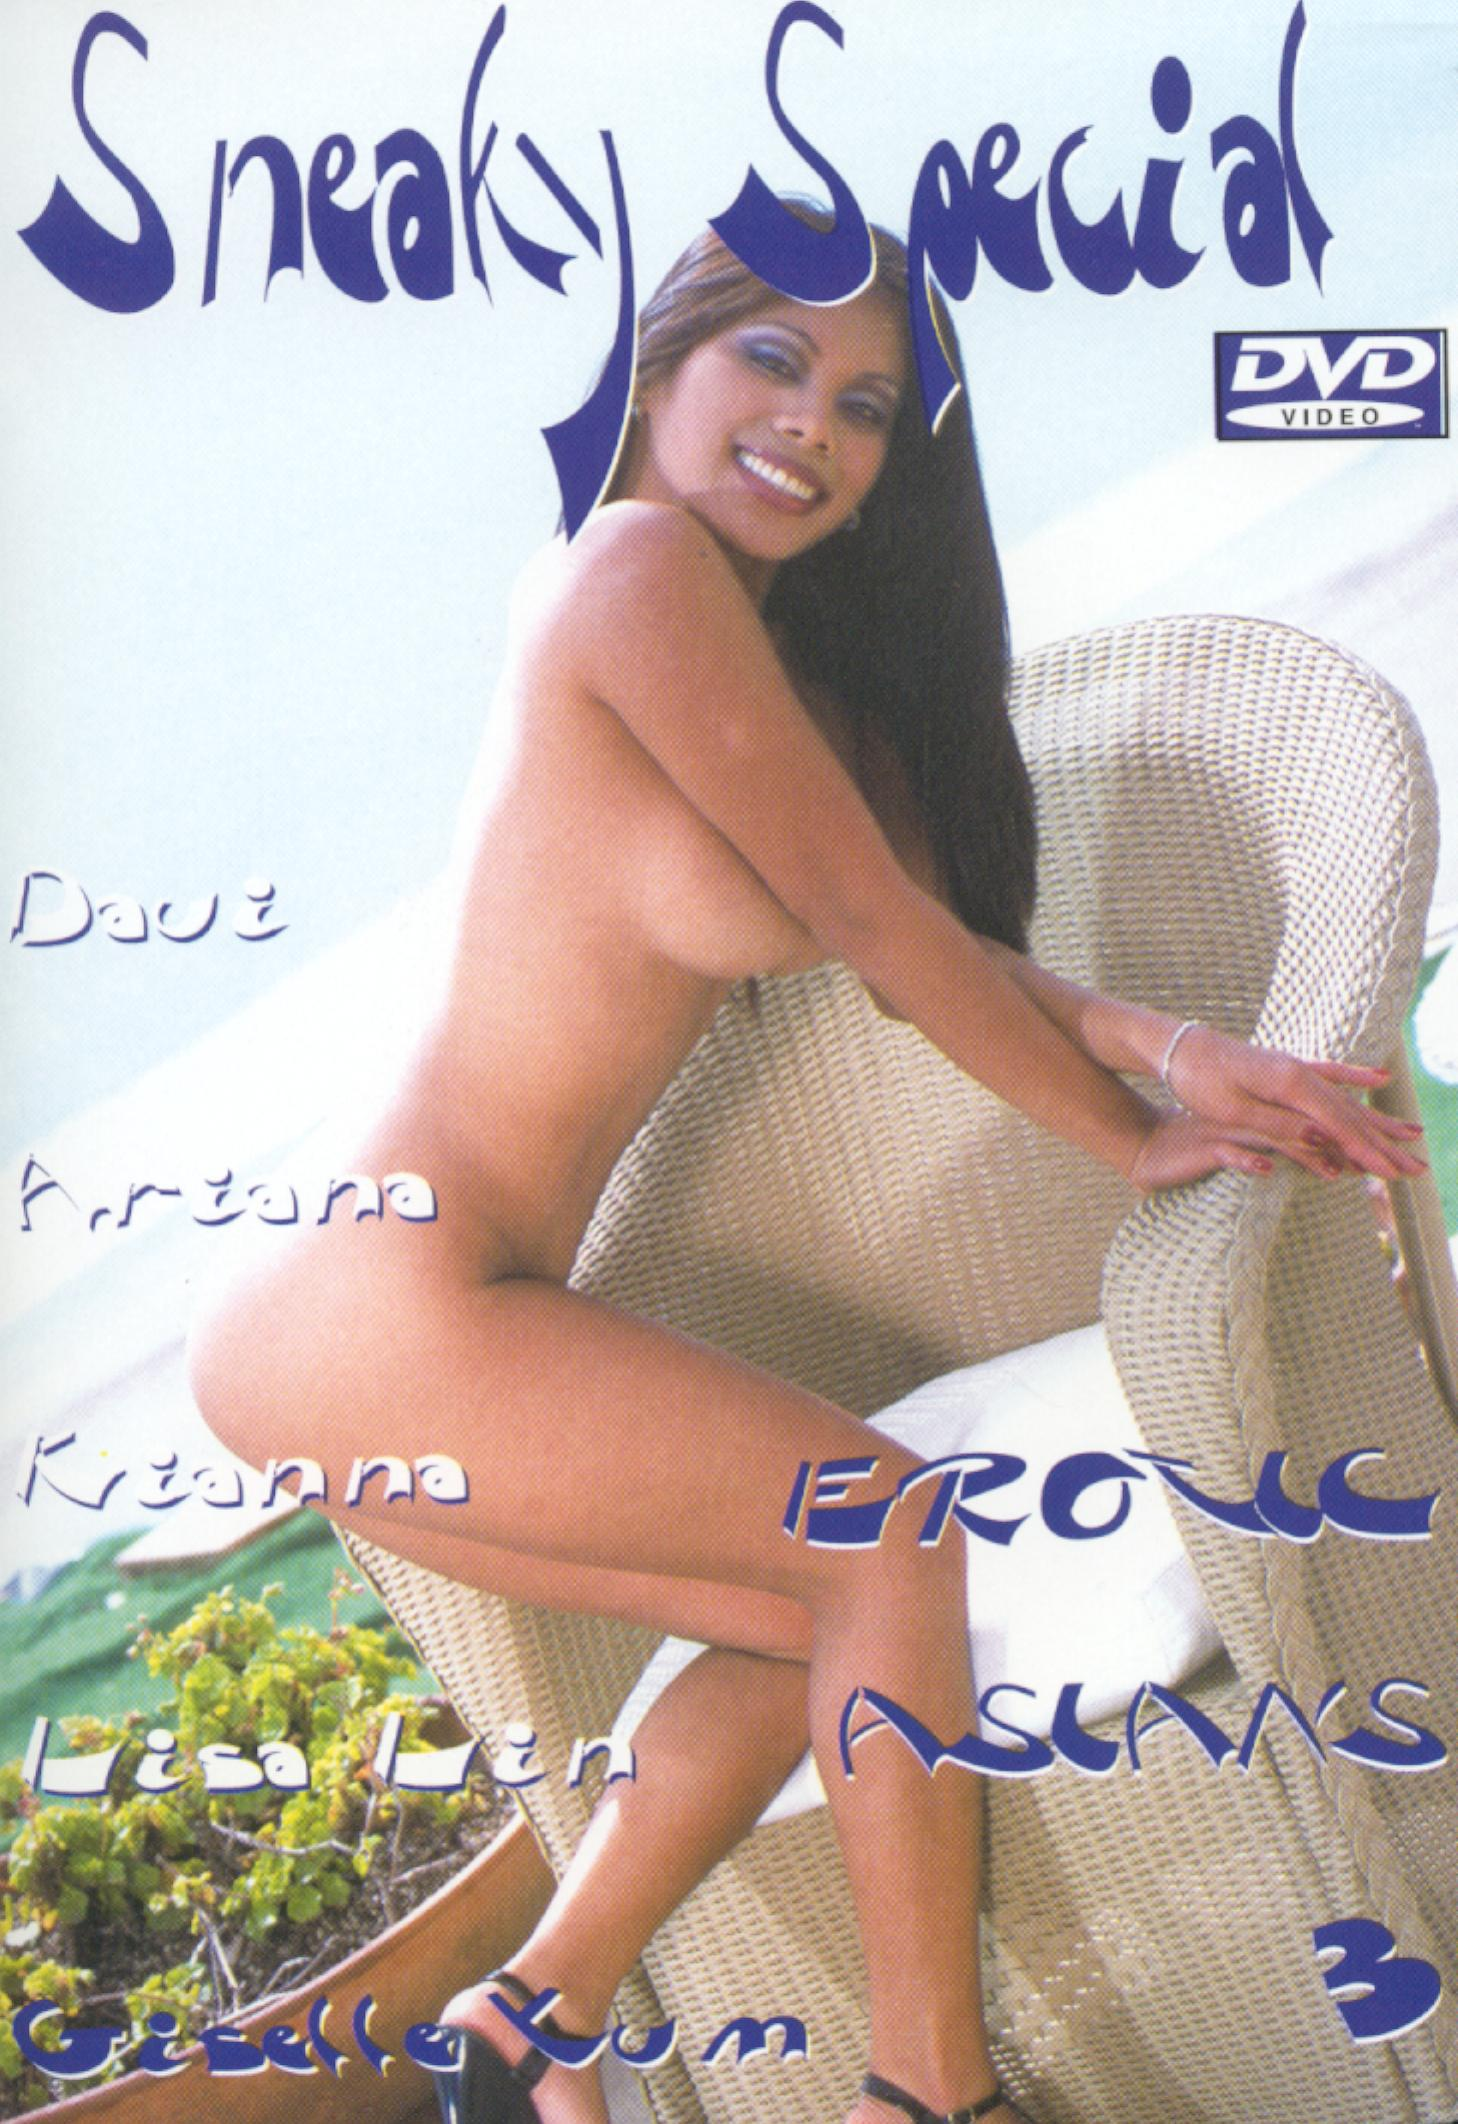 Sneaky Special: Erotic Asians 3